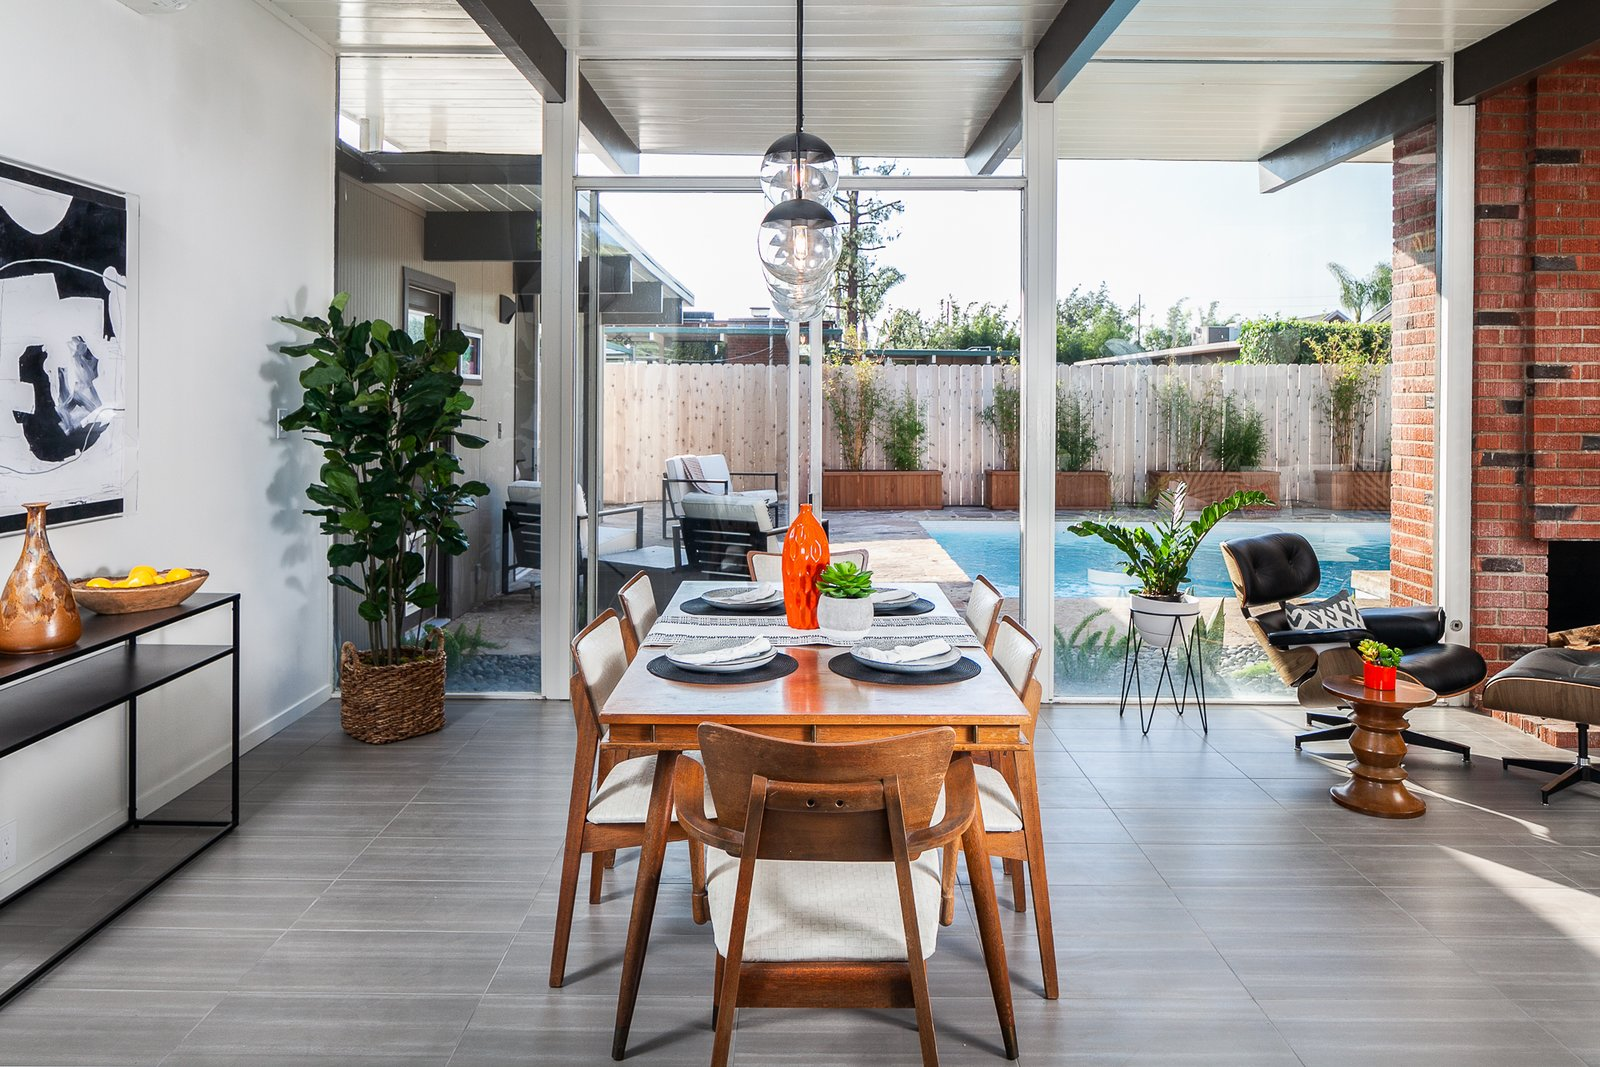 Dining, Standard Layout, Wood Burning, Pendant, Chair, and Table The dining and living also overlook the backyard pool.  Best Dining Wood Burning Table Chair Photos from A Spacious and Stylish Orange County Eichler With a Pool Seeks $1.25M